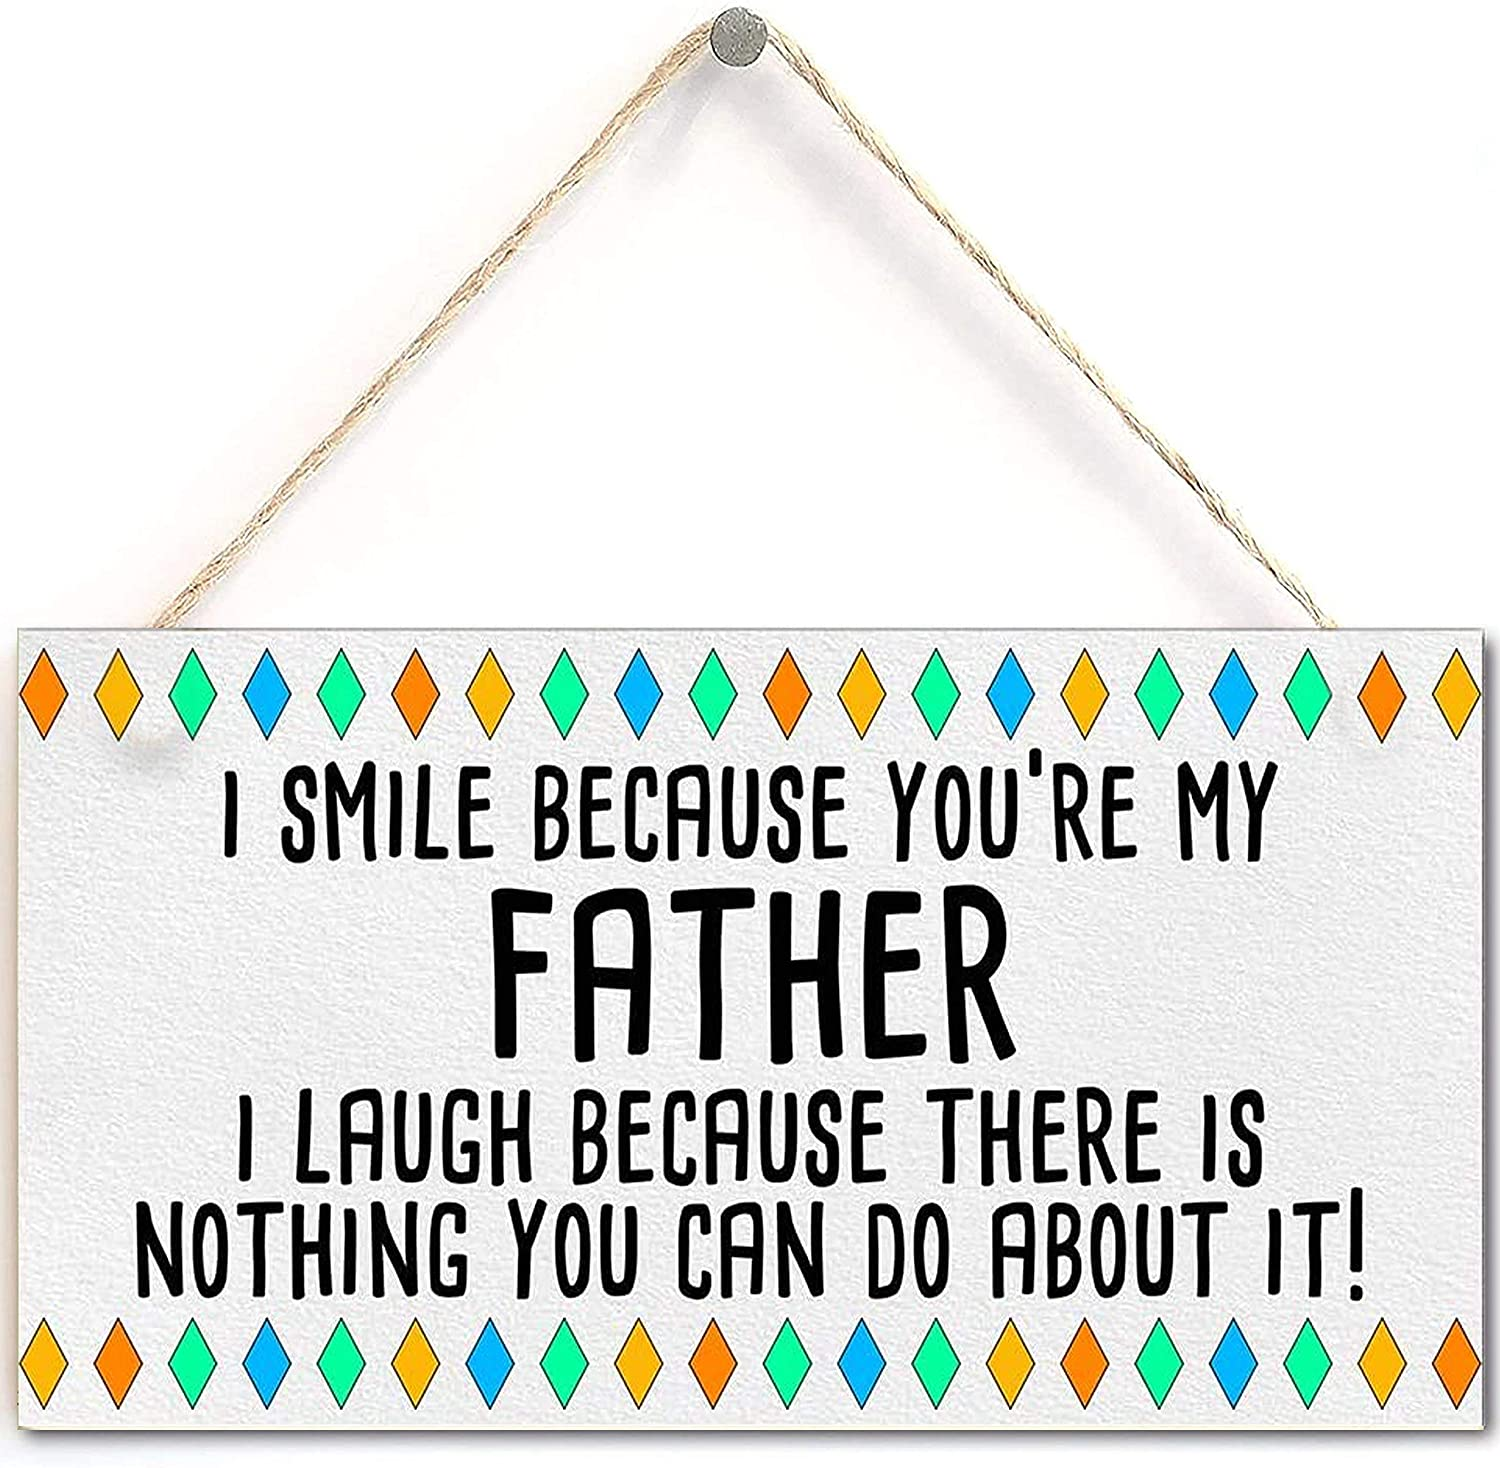 I Smile Because You?re My Father I Laugh Because There is Nothing You Can Do About It! -Father's Day Plaque Gift Funny Novelty Father Present Dad (5 'X 10')